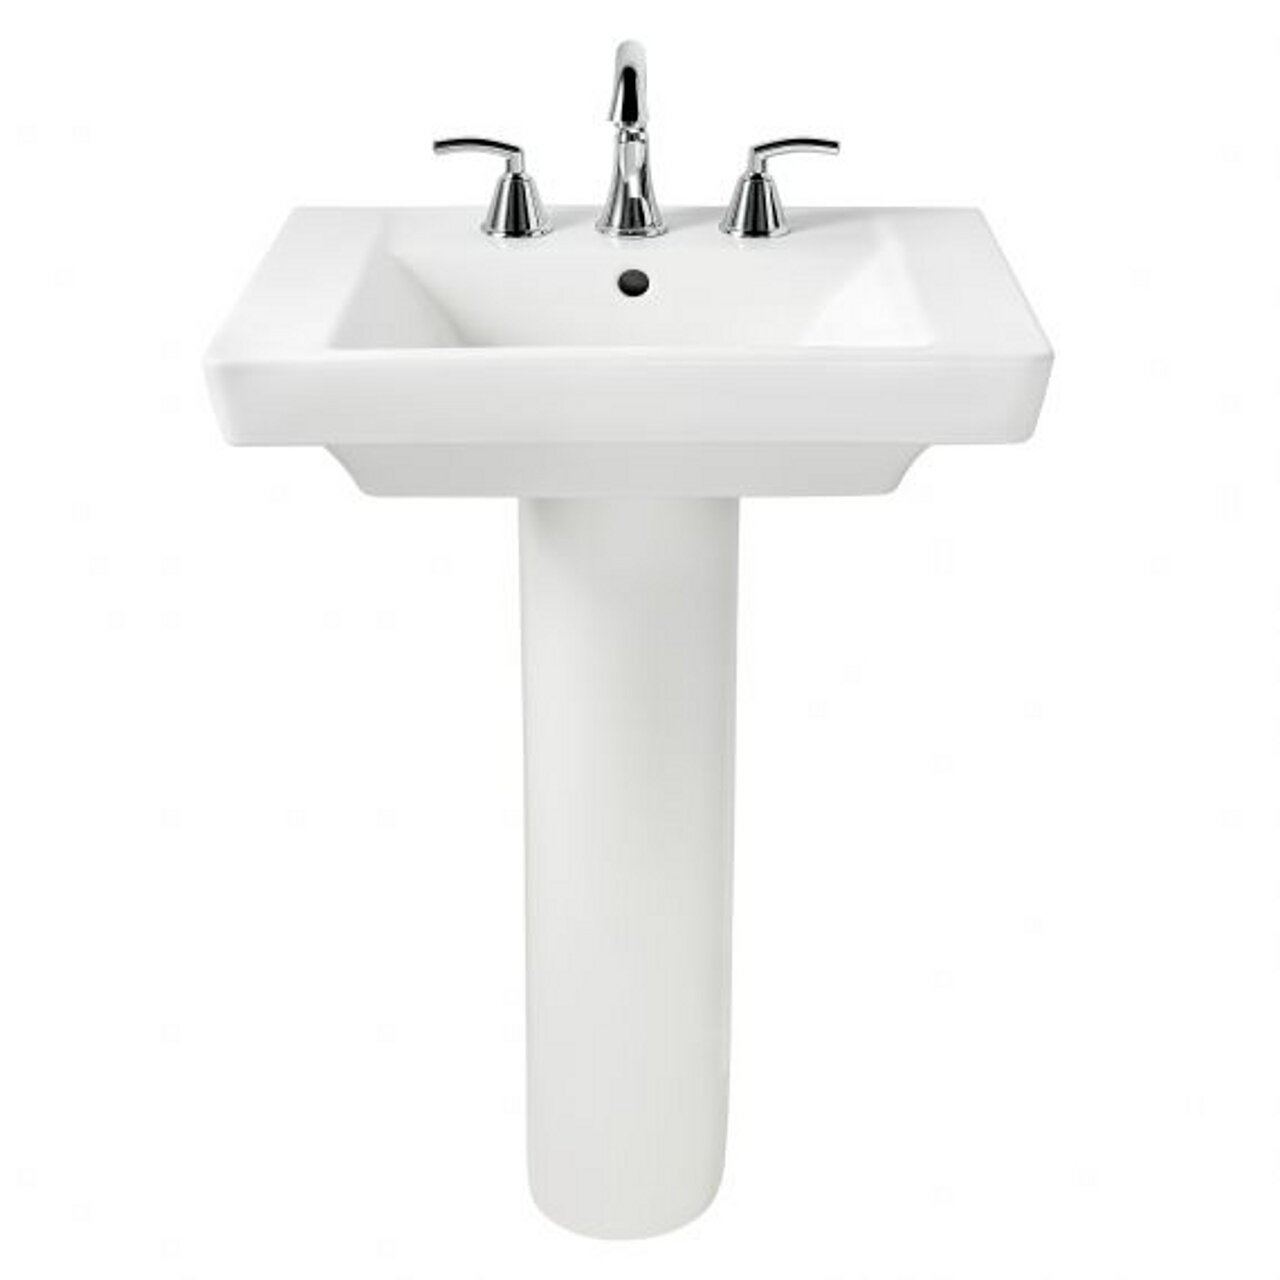 ... Standard: Modern White Pedestal Sink Ideal for Small Bathrooms